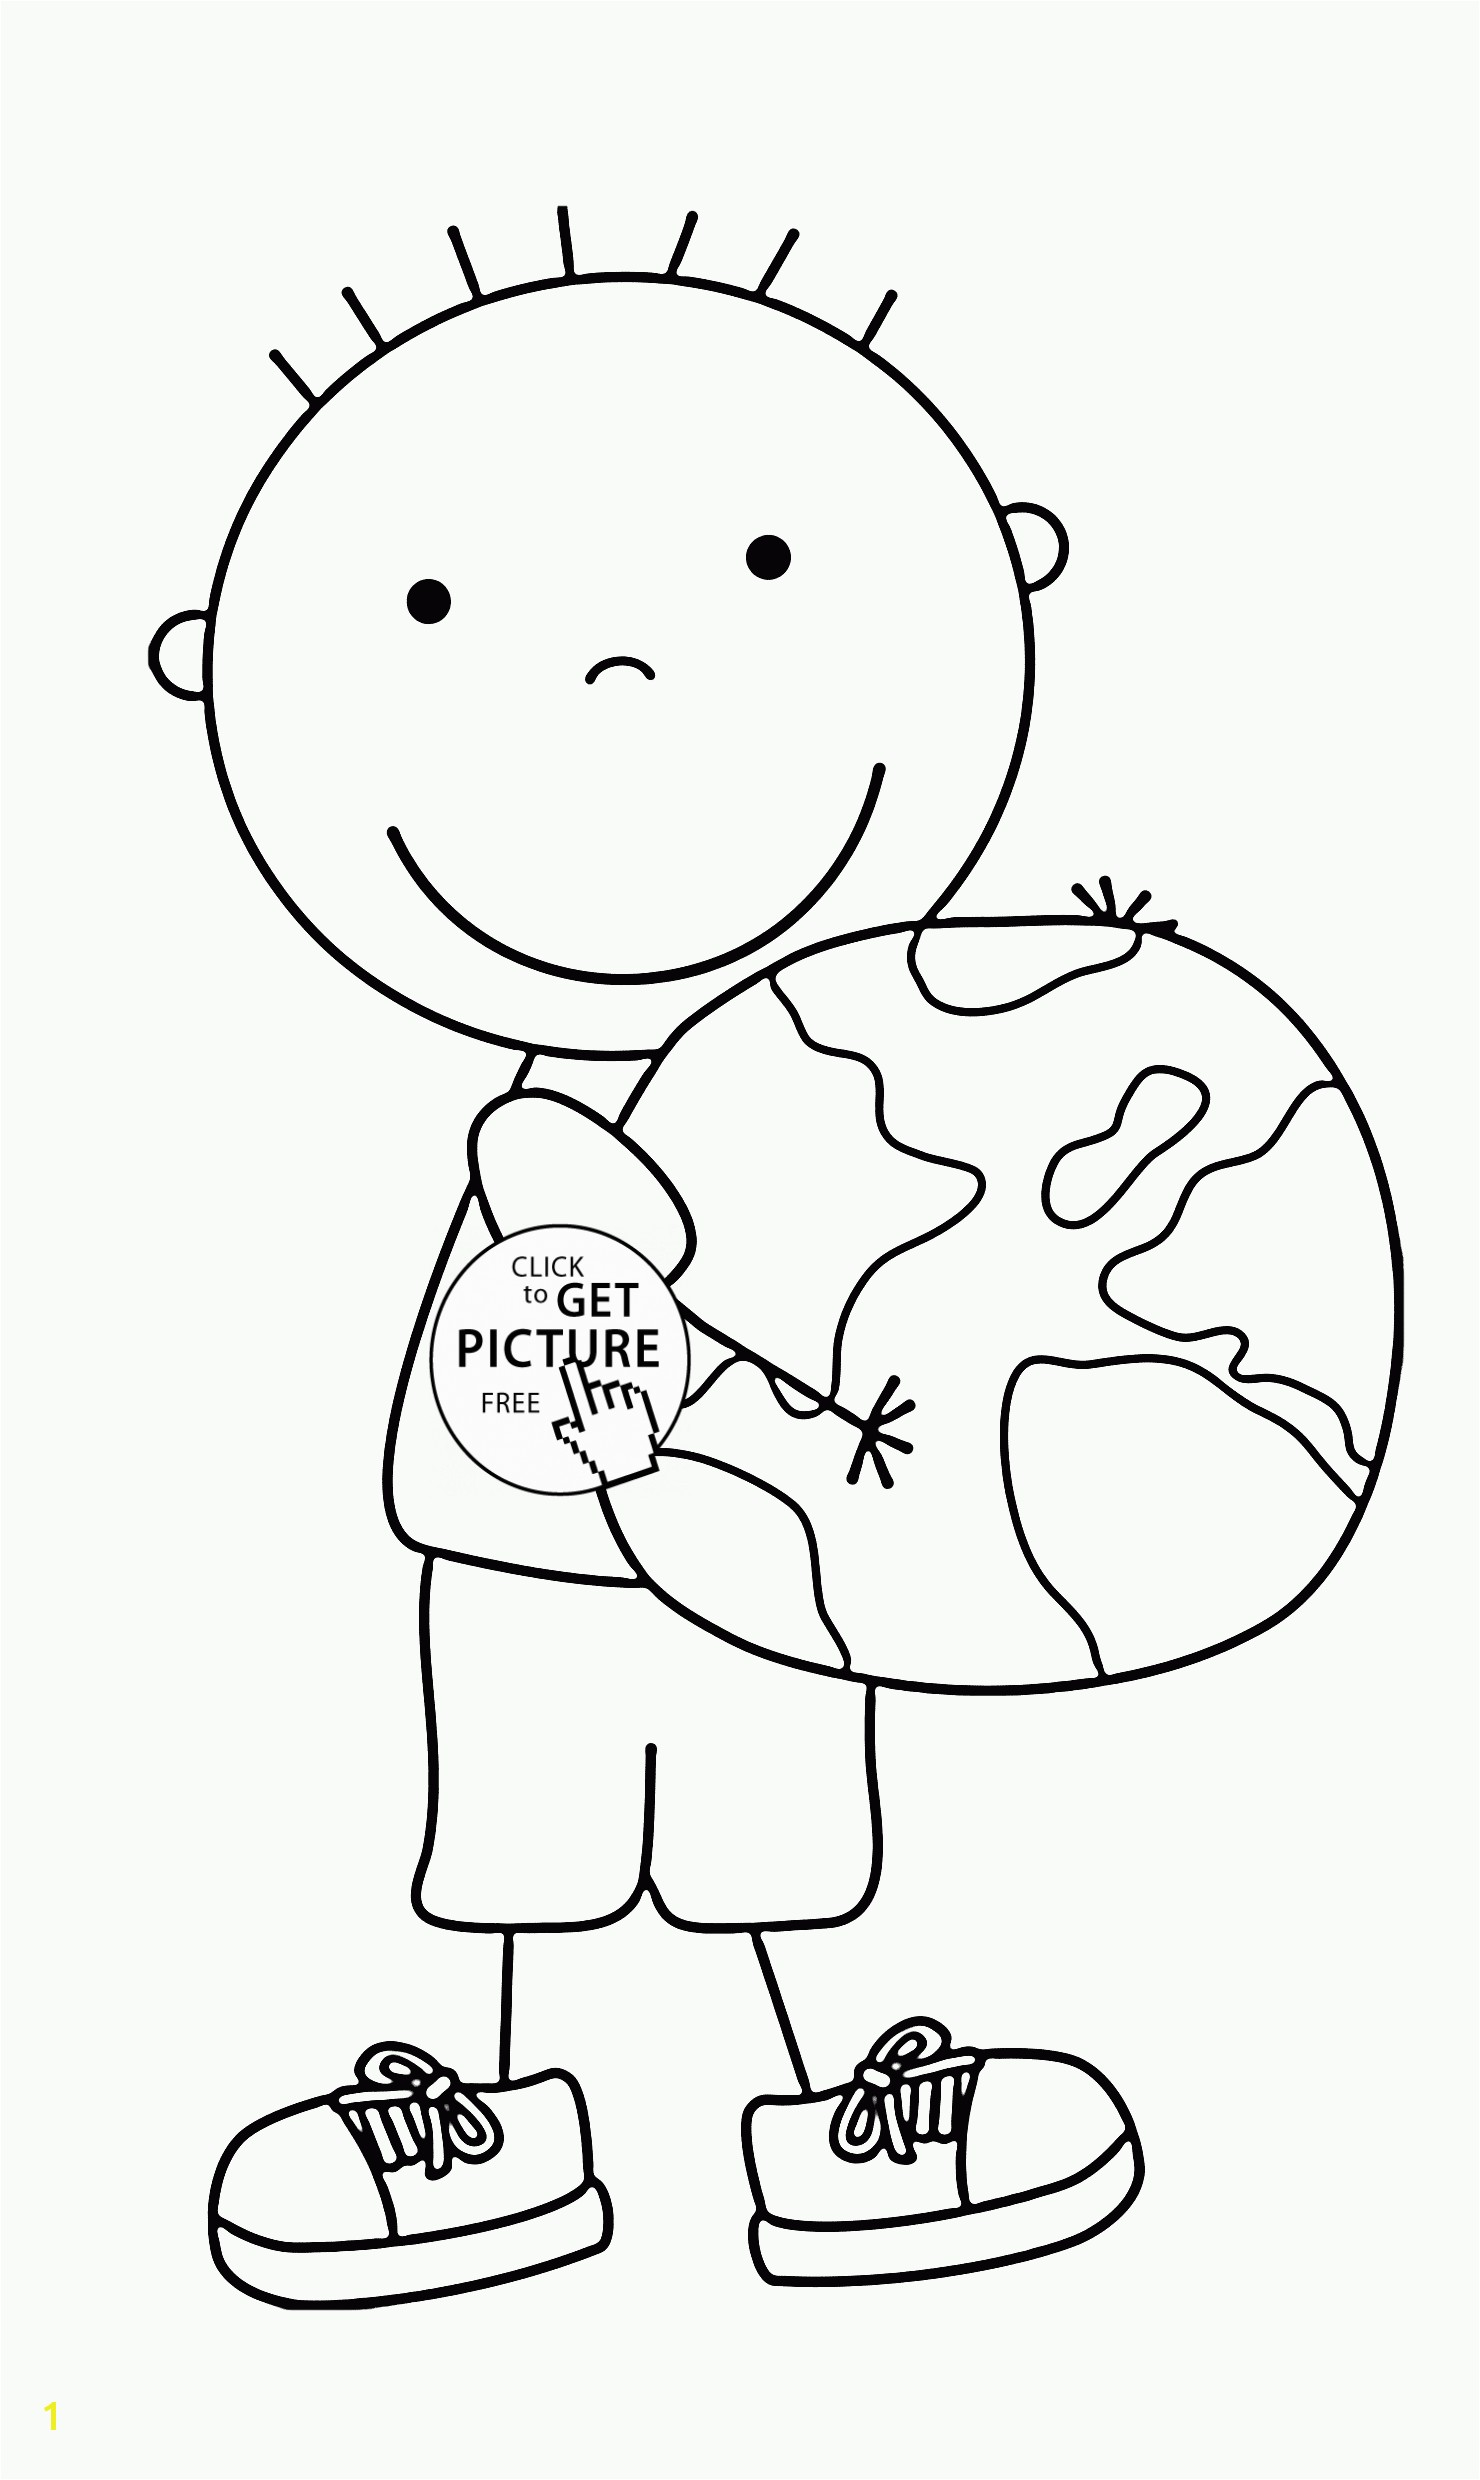 Keep the Earth Clean and Green Earth Day coloring page for kids coloring pages